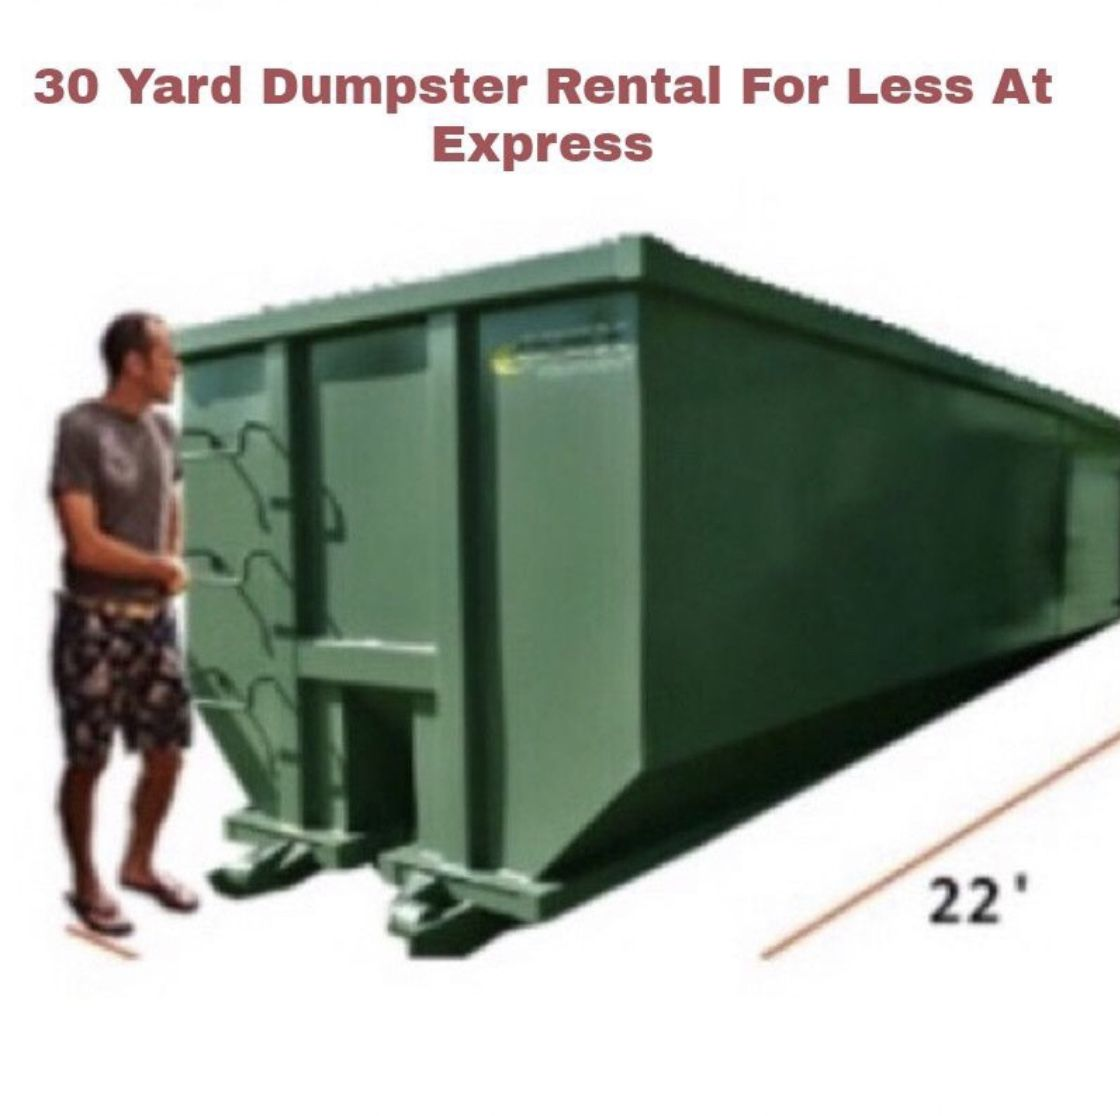 30 Yard Construction Roll Off Dumpster Rental Save Up To 75 On Short Term Rentals Contractor Contractors Residentia Dumpster Rental Roll Off Dumpster Palm Bay Florida